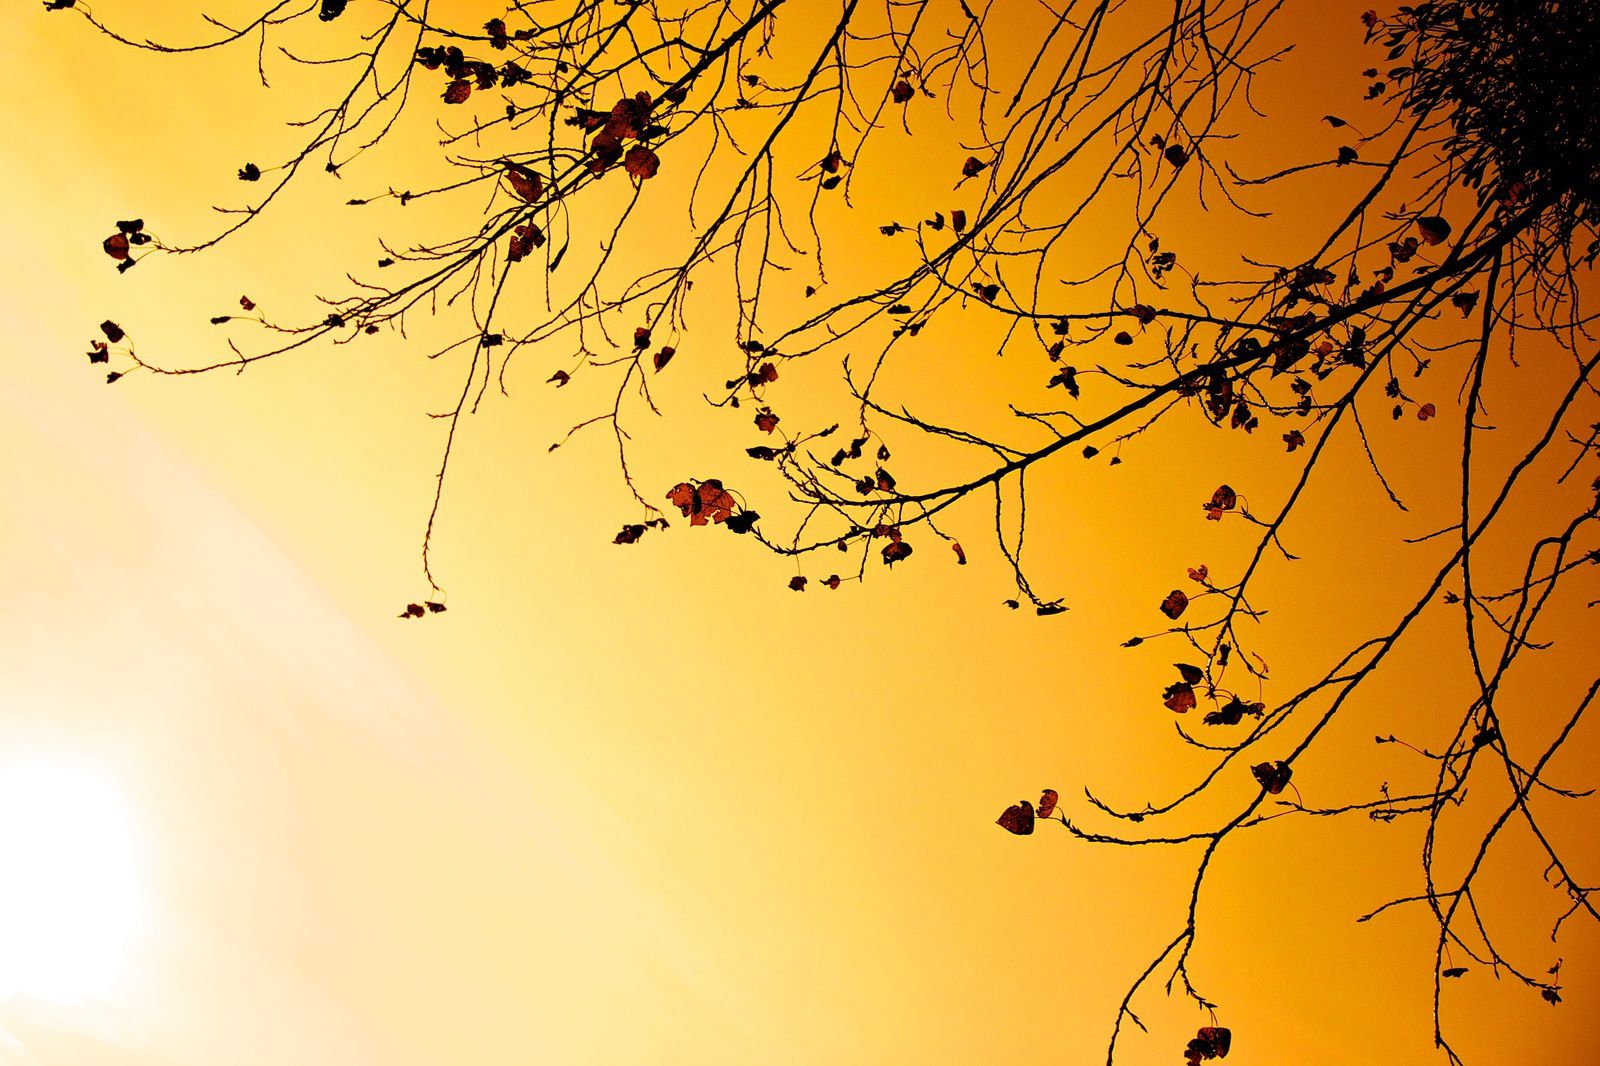 Arbres - Branches - Soleil - Nature - Wallpapers - HD